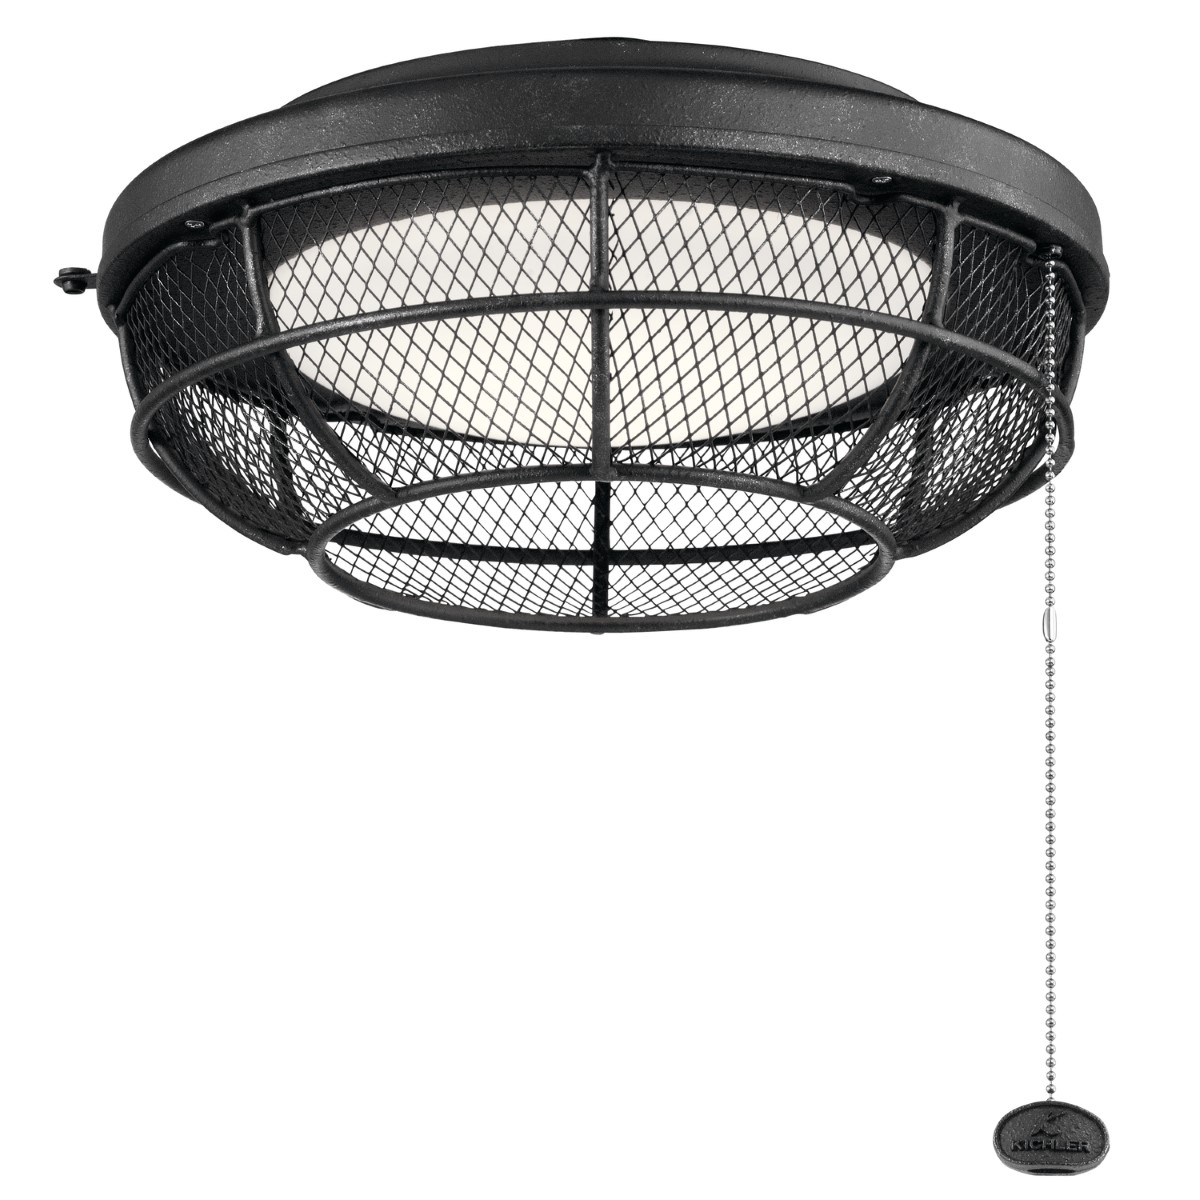 Kichler Outdoor Wet LED Mesh Light Kit with Etched Cased Opal Shade - Distressed Black (380952DBK)